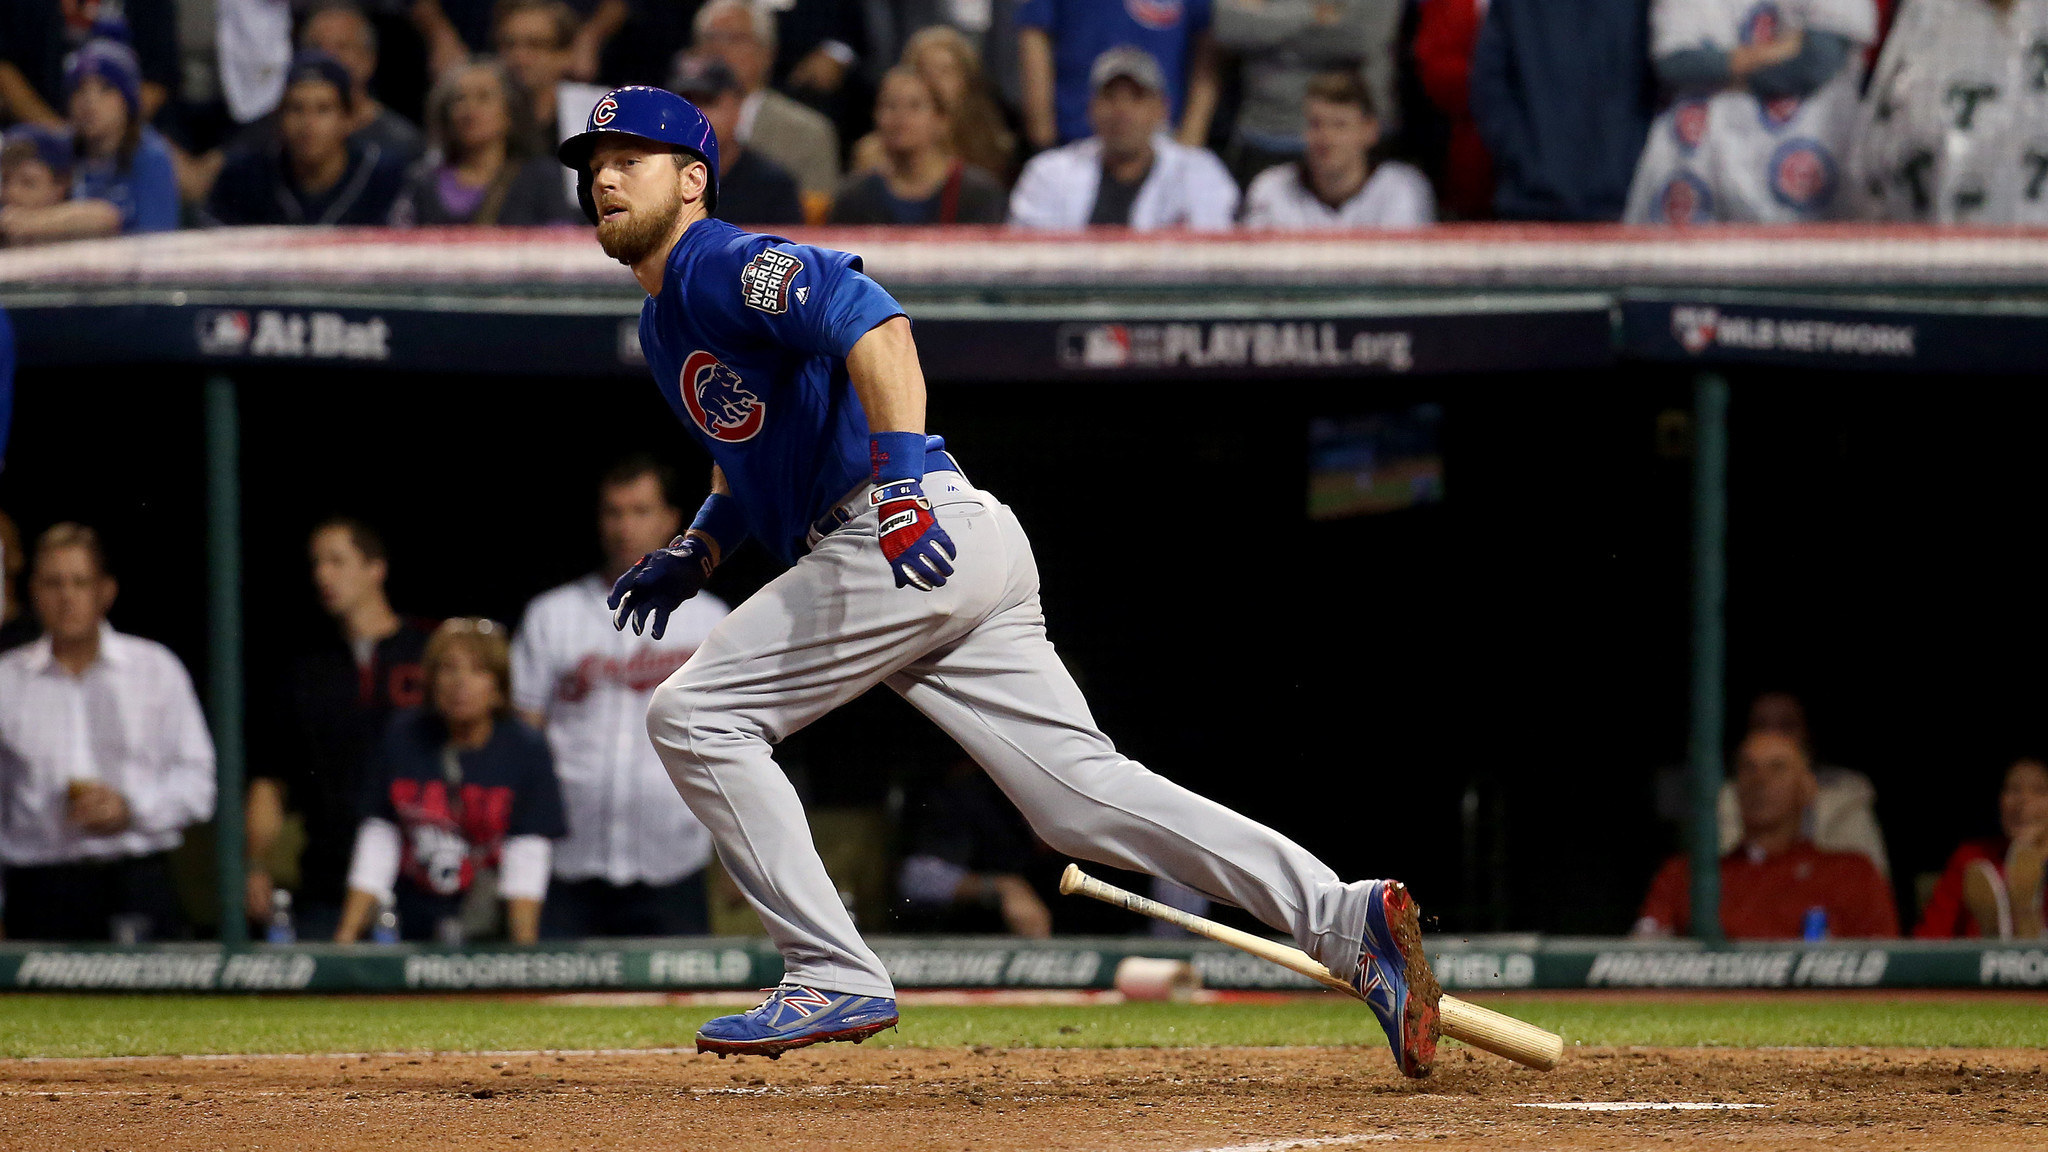 Image result for 2016 world series game 7 zobrist double